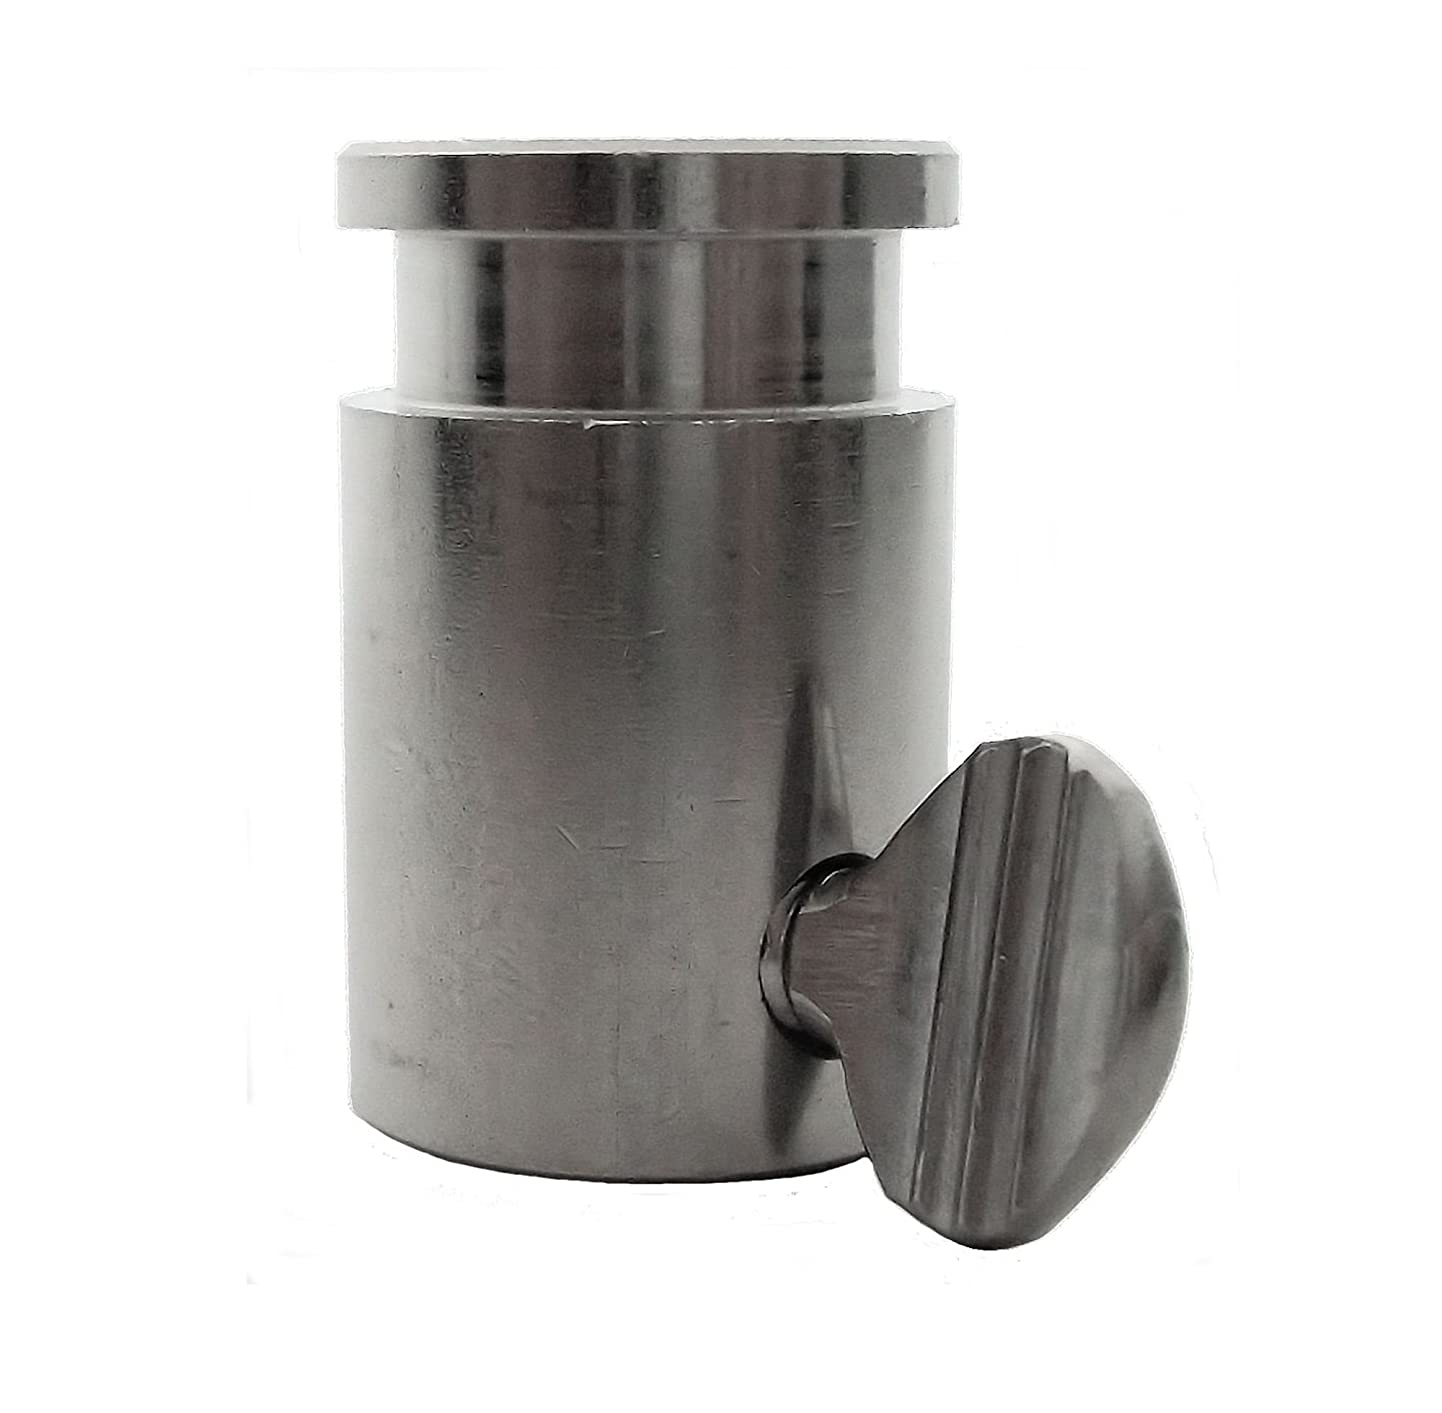 OneGrill Stainless Steel Rotisserie Spit Rod Bushing (Fits: 1/2